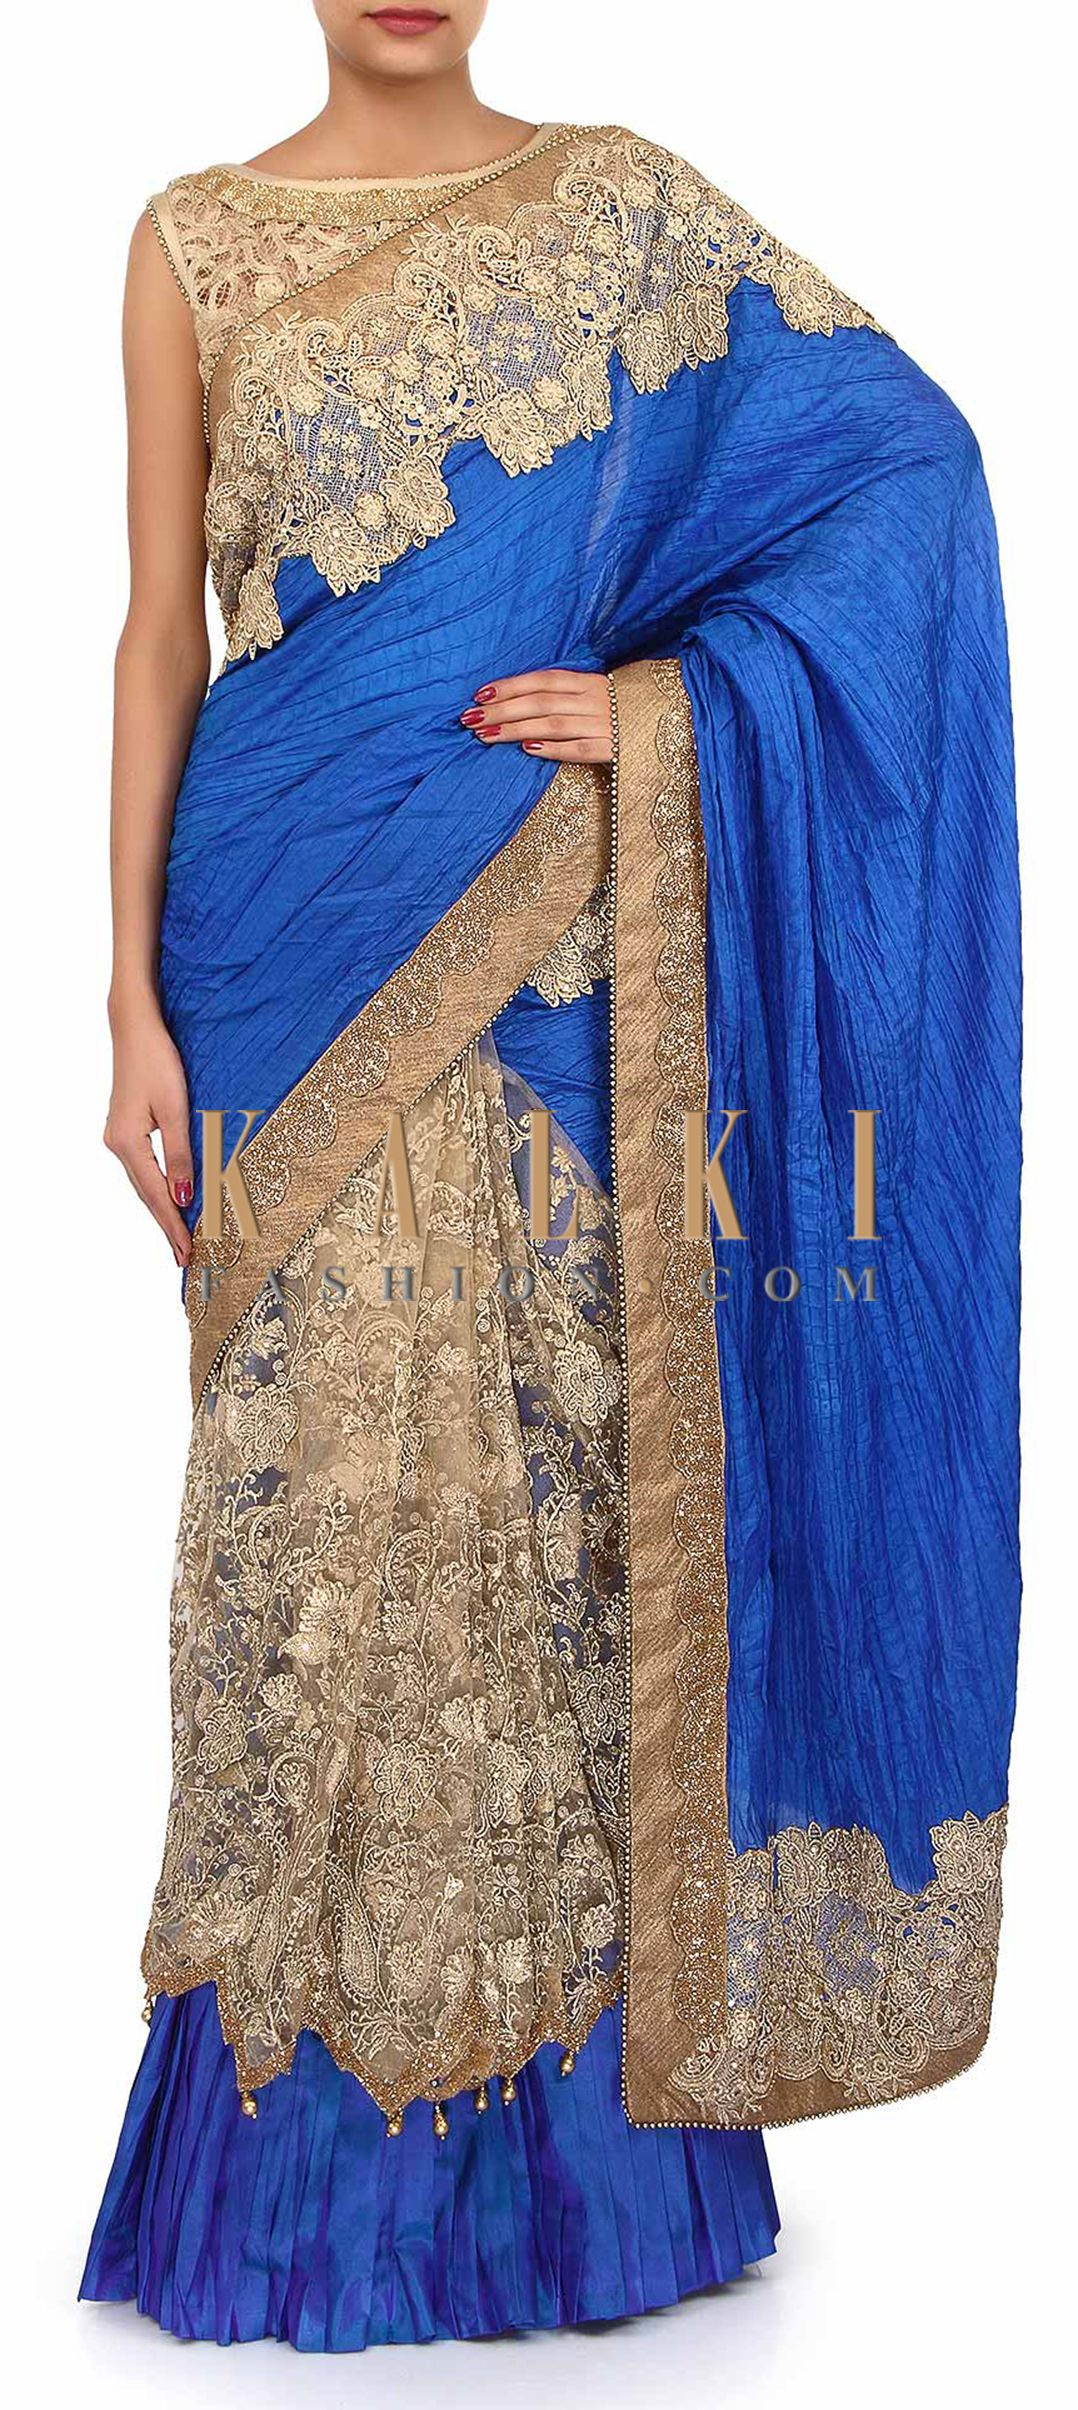 Gold and blue lehenga saree adorn in zari and kardana embroidery